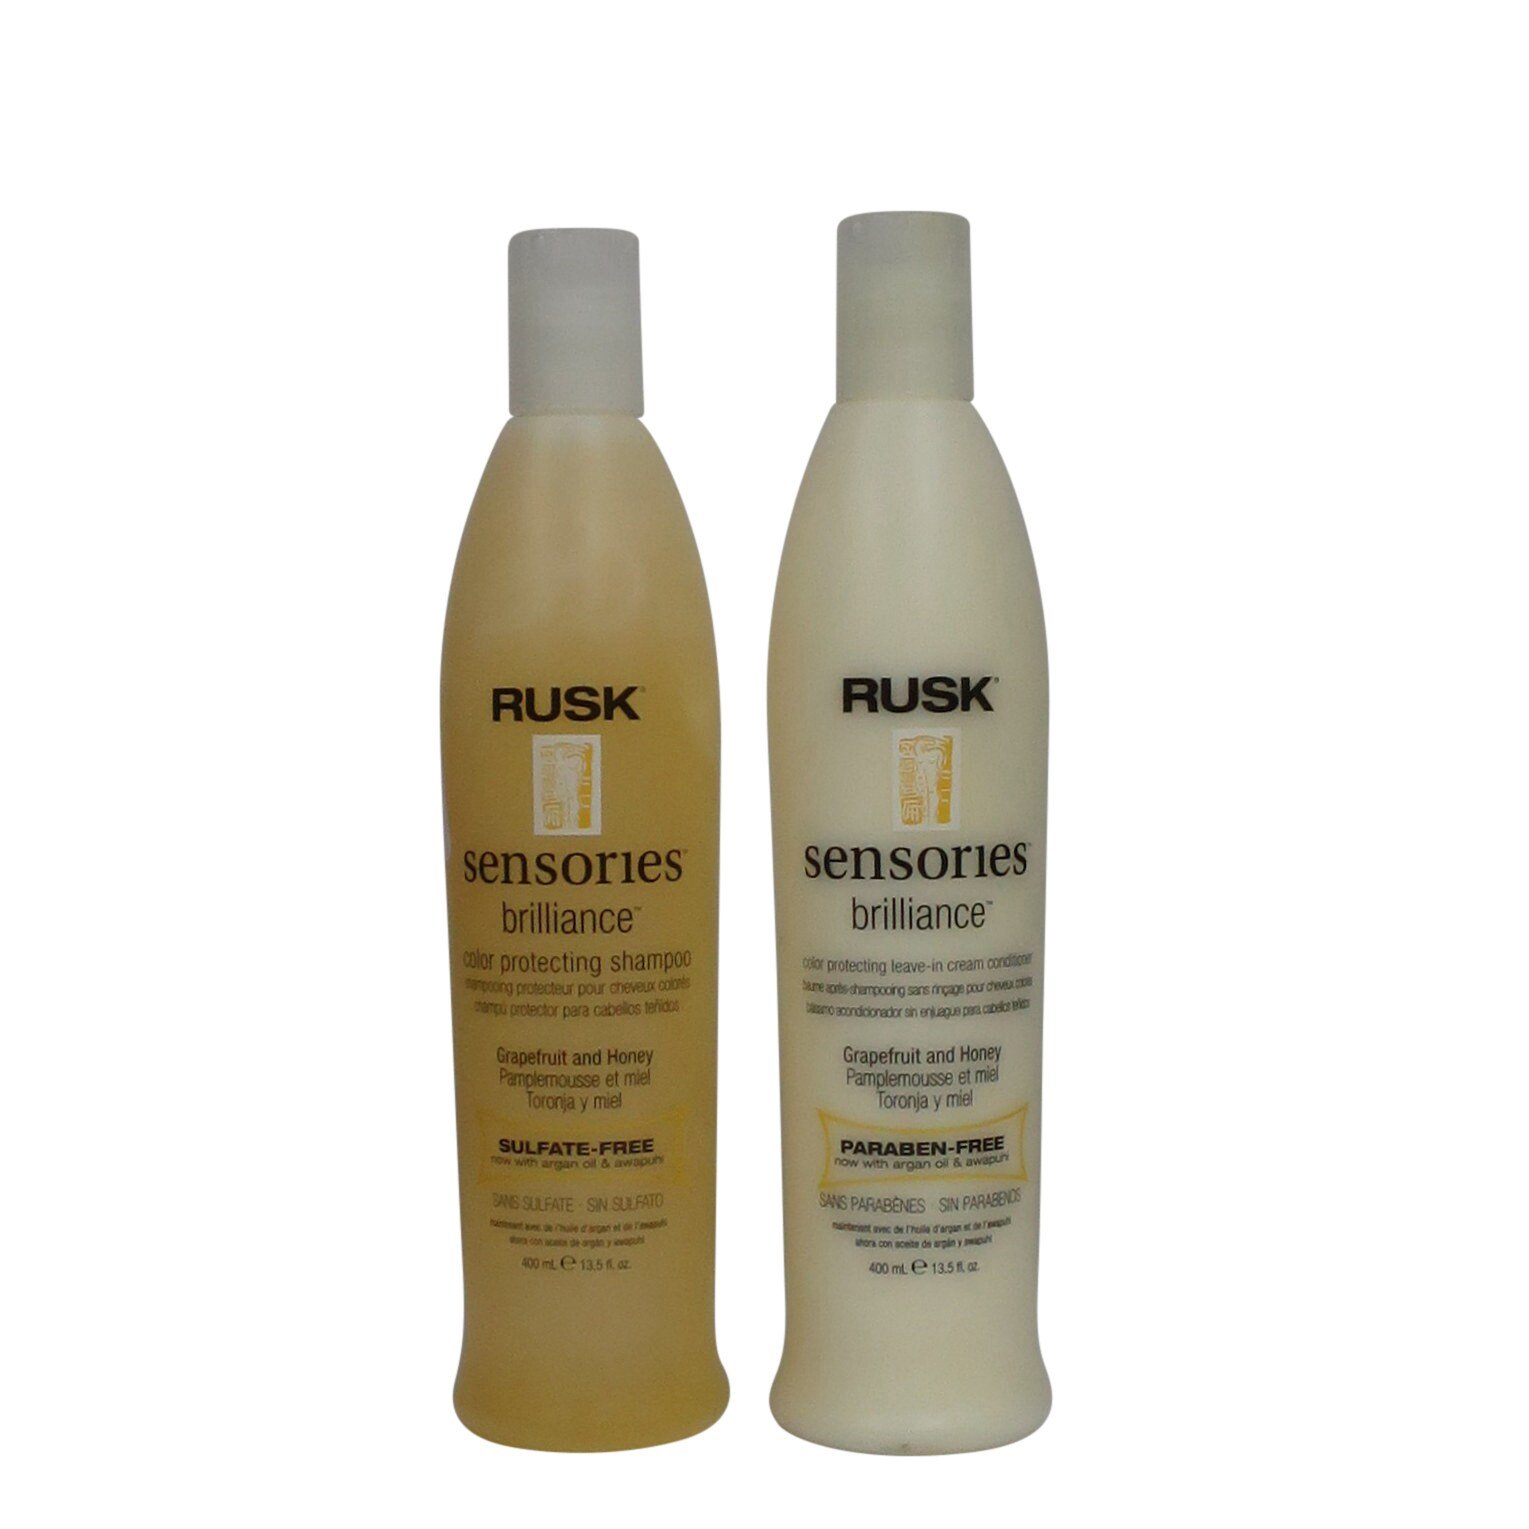 Rusk Brilliance Grapefruit Honey 135 Ounce Shampoo Cream